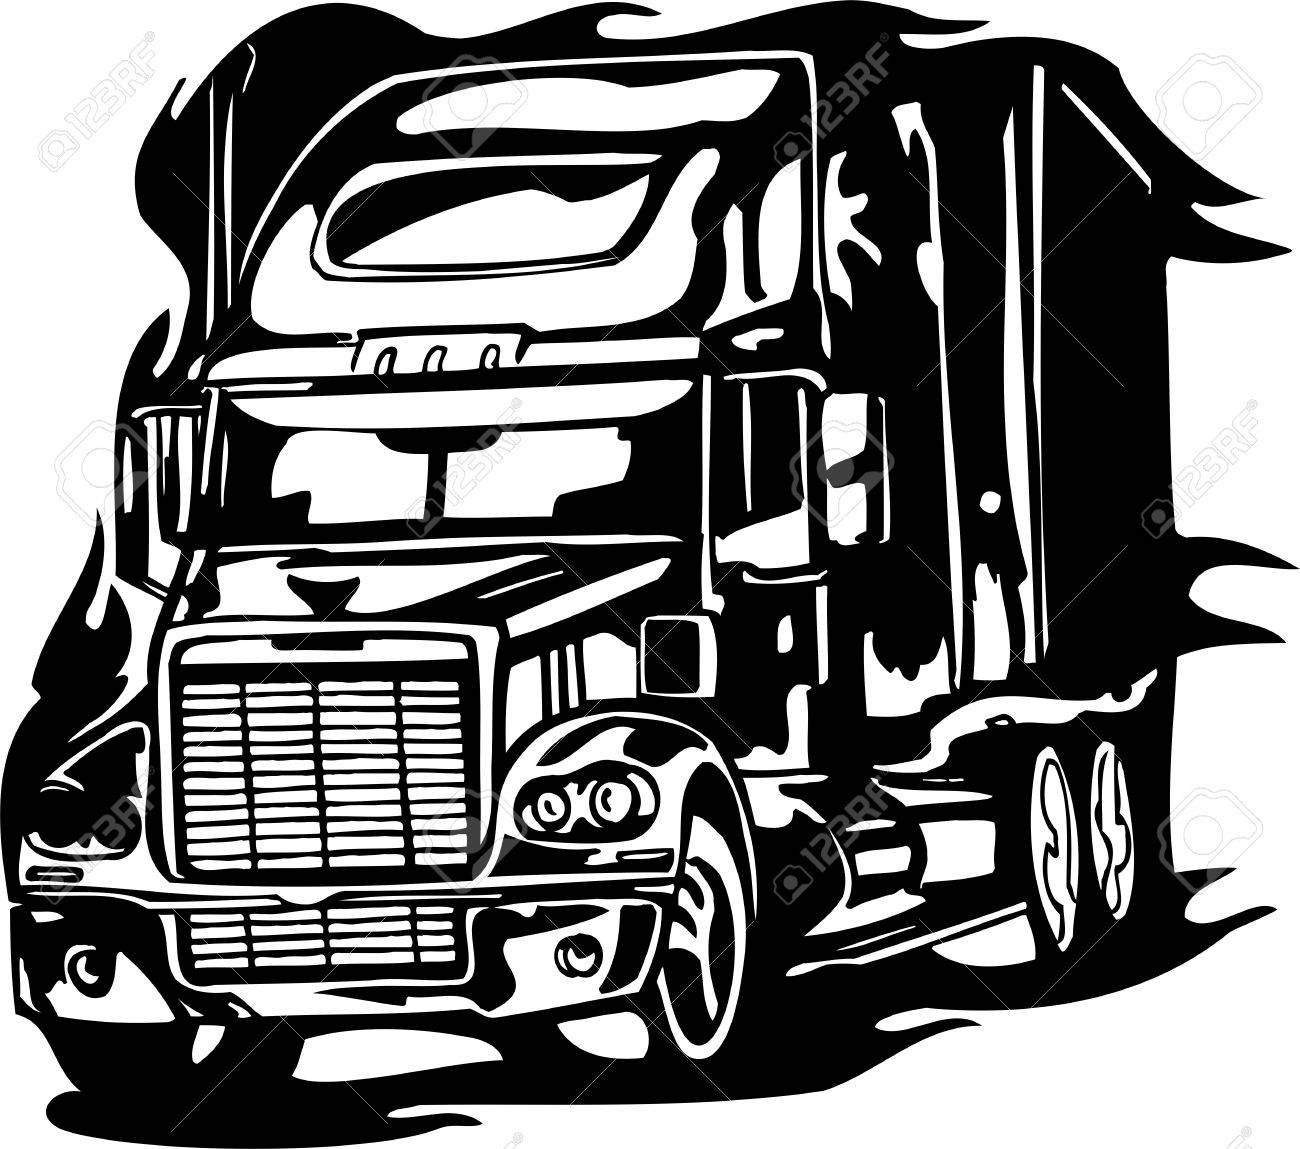 Racing Trucks with inclusion of a flames and tribal. illustration ready for vinyl cutting. Stock Vector - 8651063